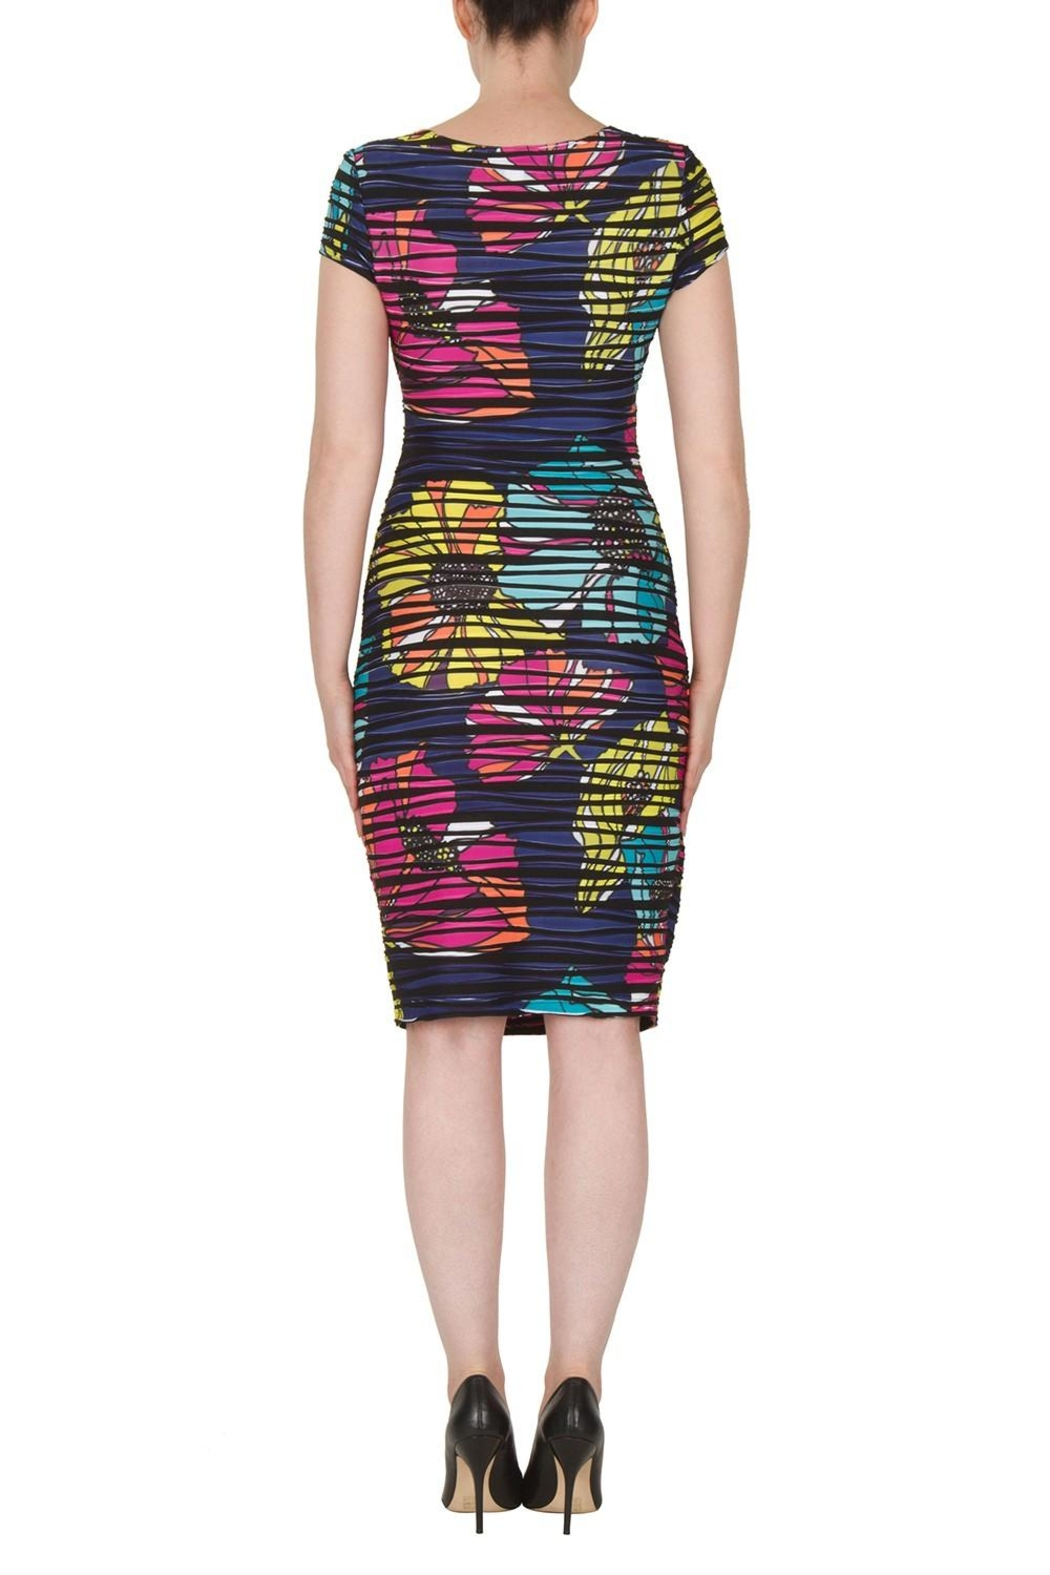 Joseph Ribkoff Faux Wrap Print Dress - Side Cropped Image